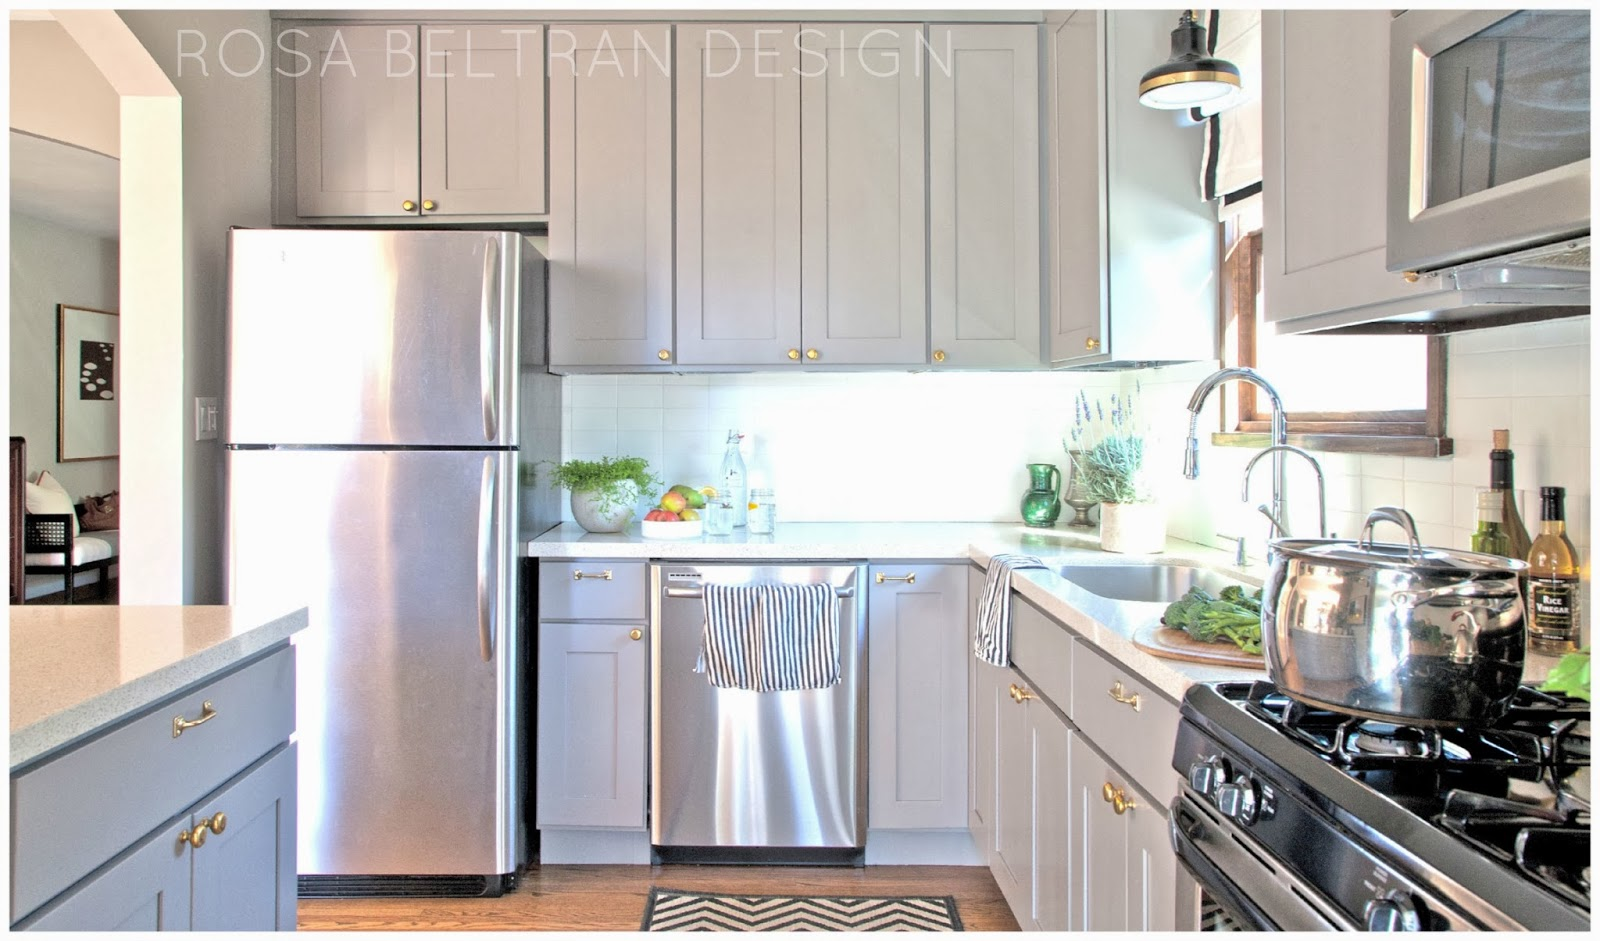 Rosa beltran design diy painted kitchen cabinets Pictures of painted cabinets